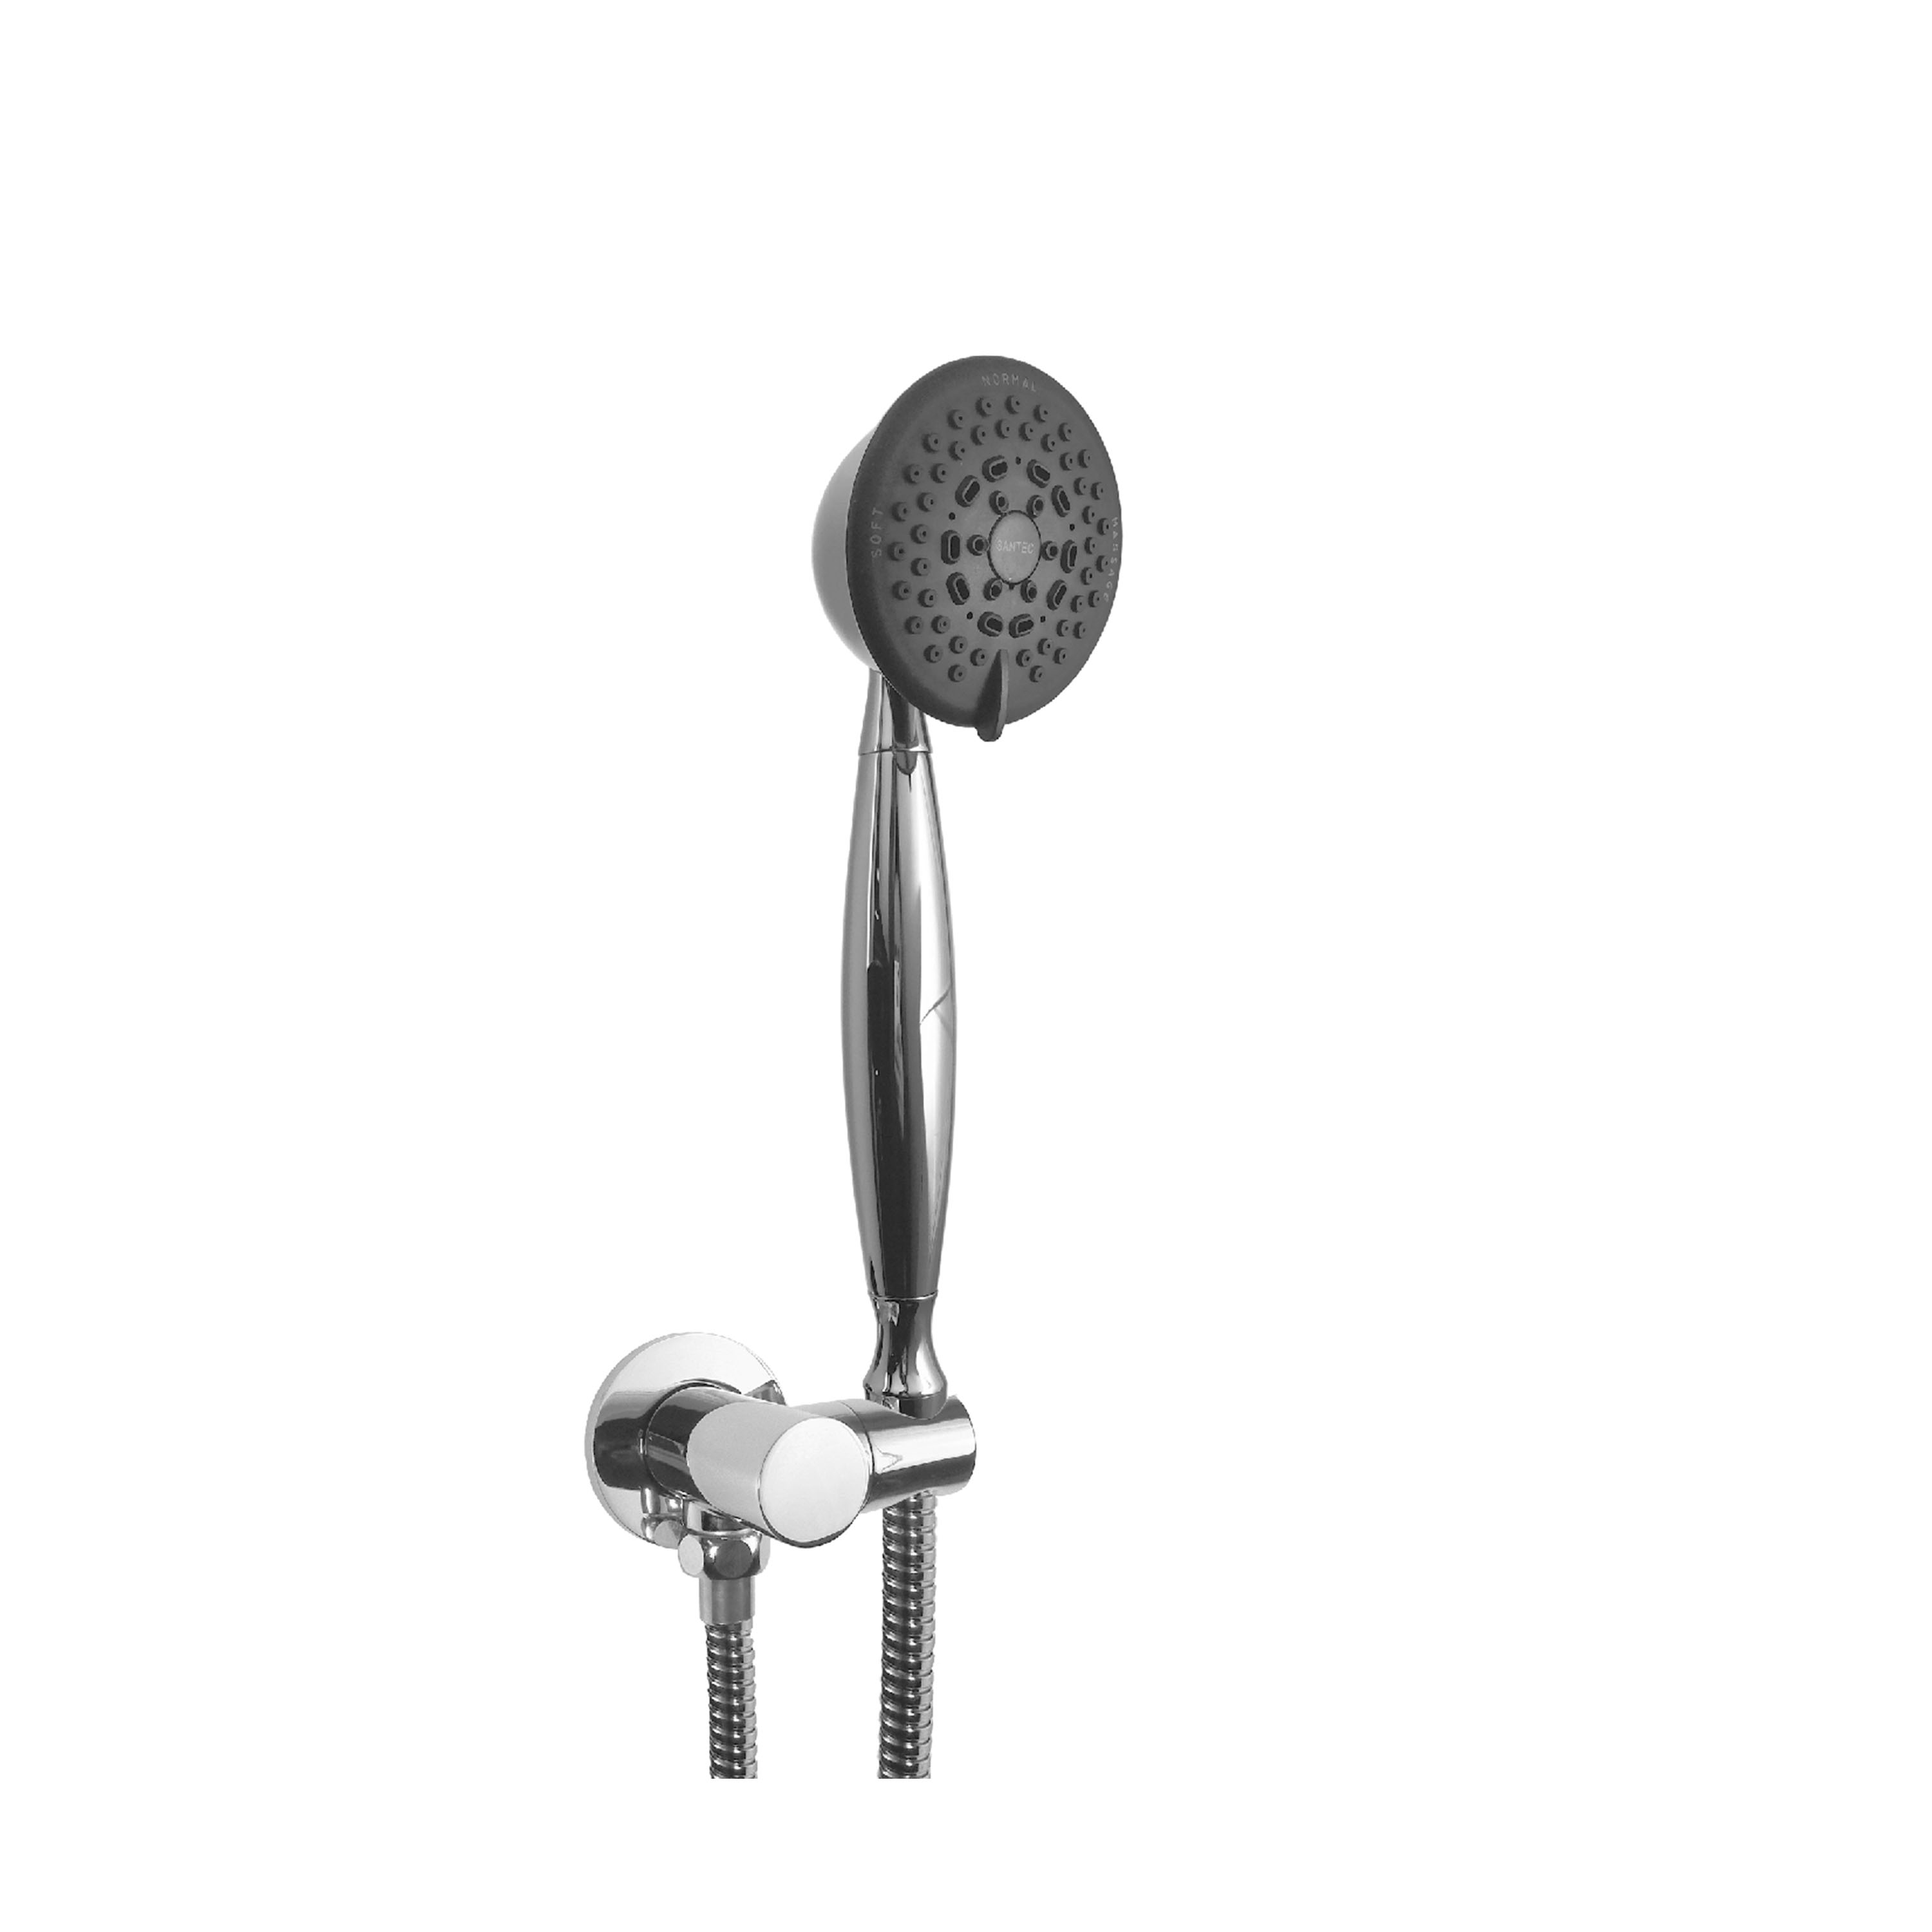 Multifunction Hand Shower Set With Adjustable Bracket And